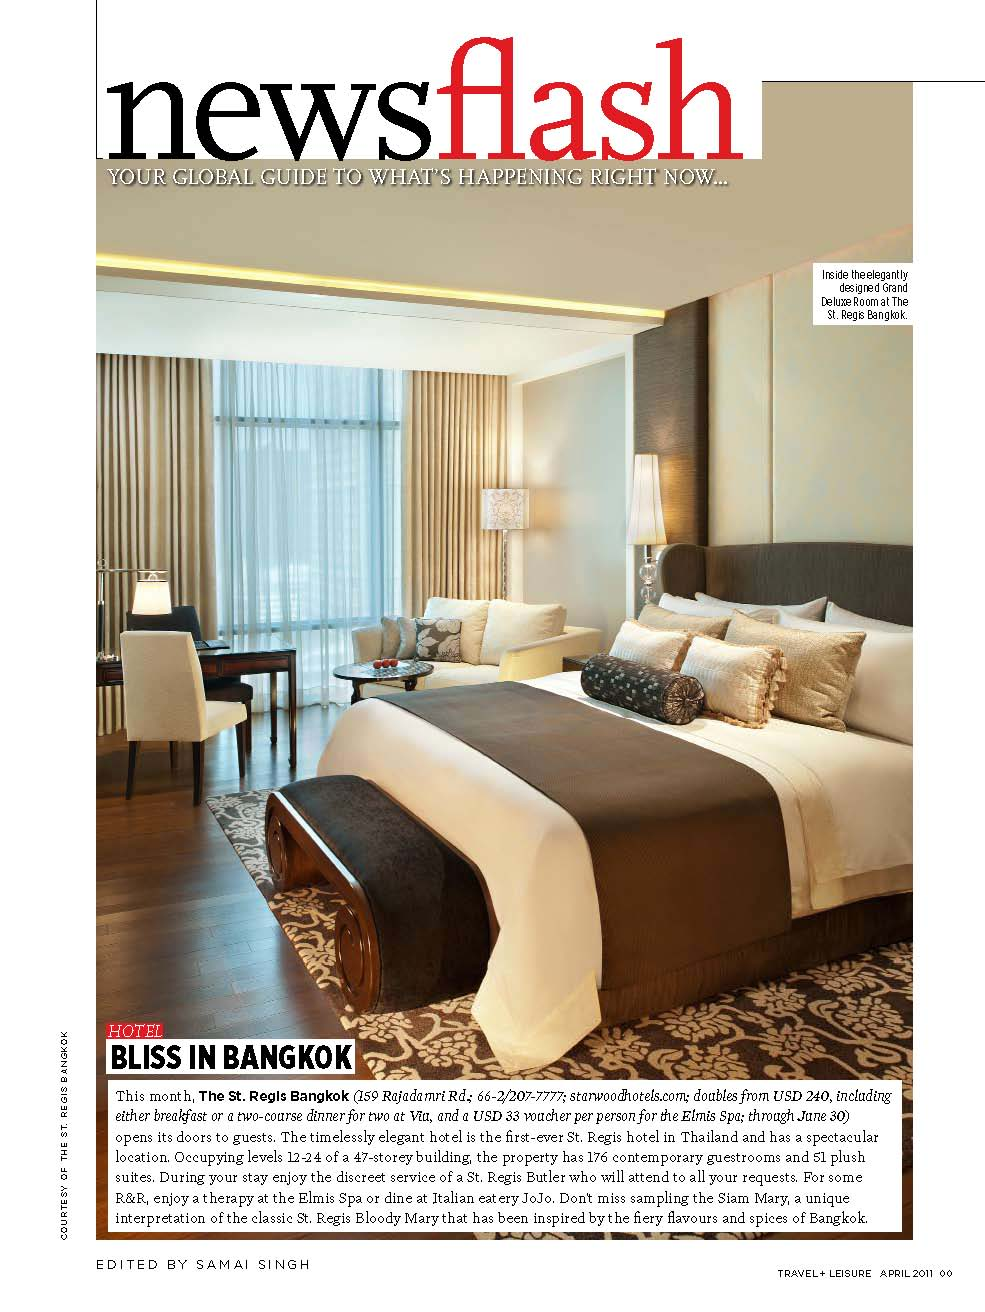 Travel + Leisure South Asia April Issue